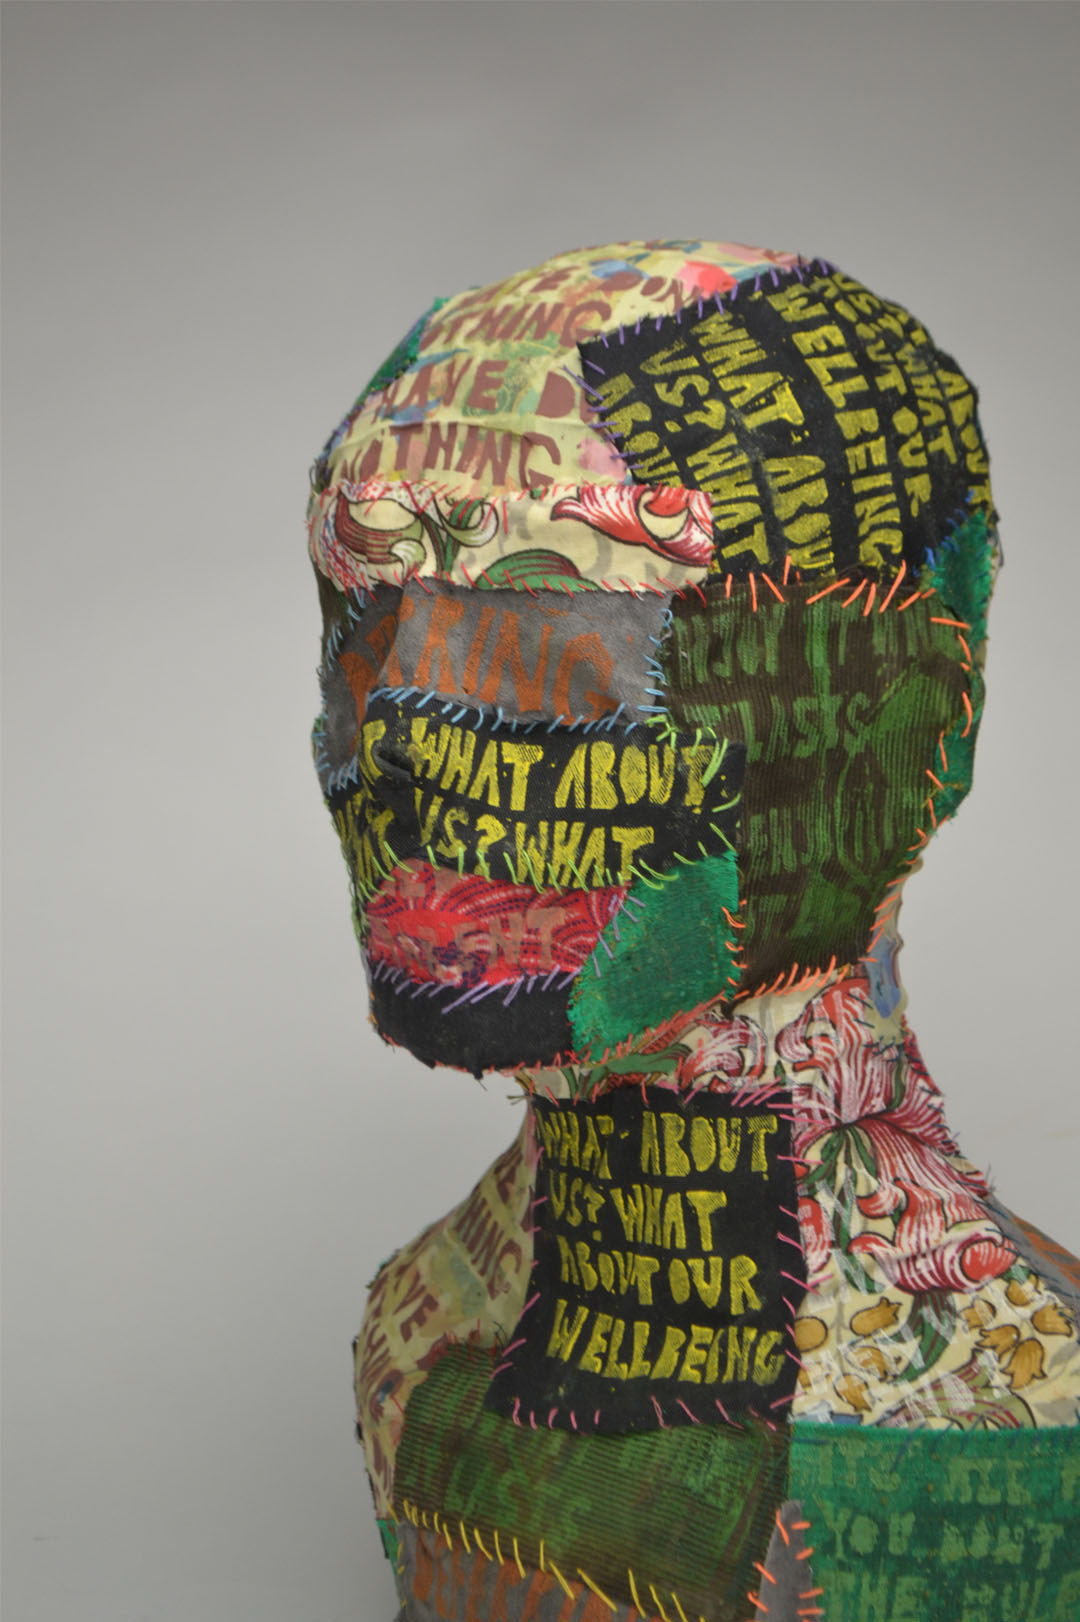 A bust covered with scraps of fabric that have been embroidered together. The fabric is printed with words and patterns.